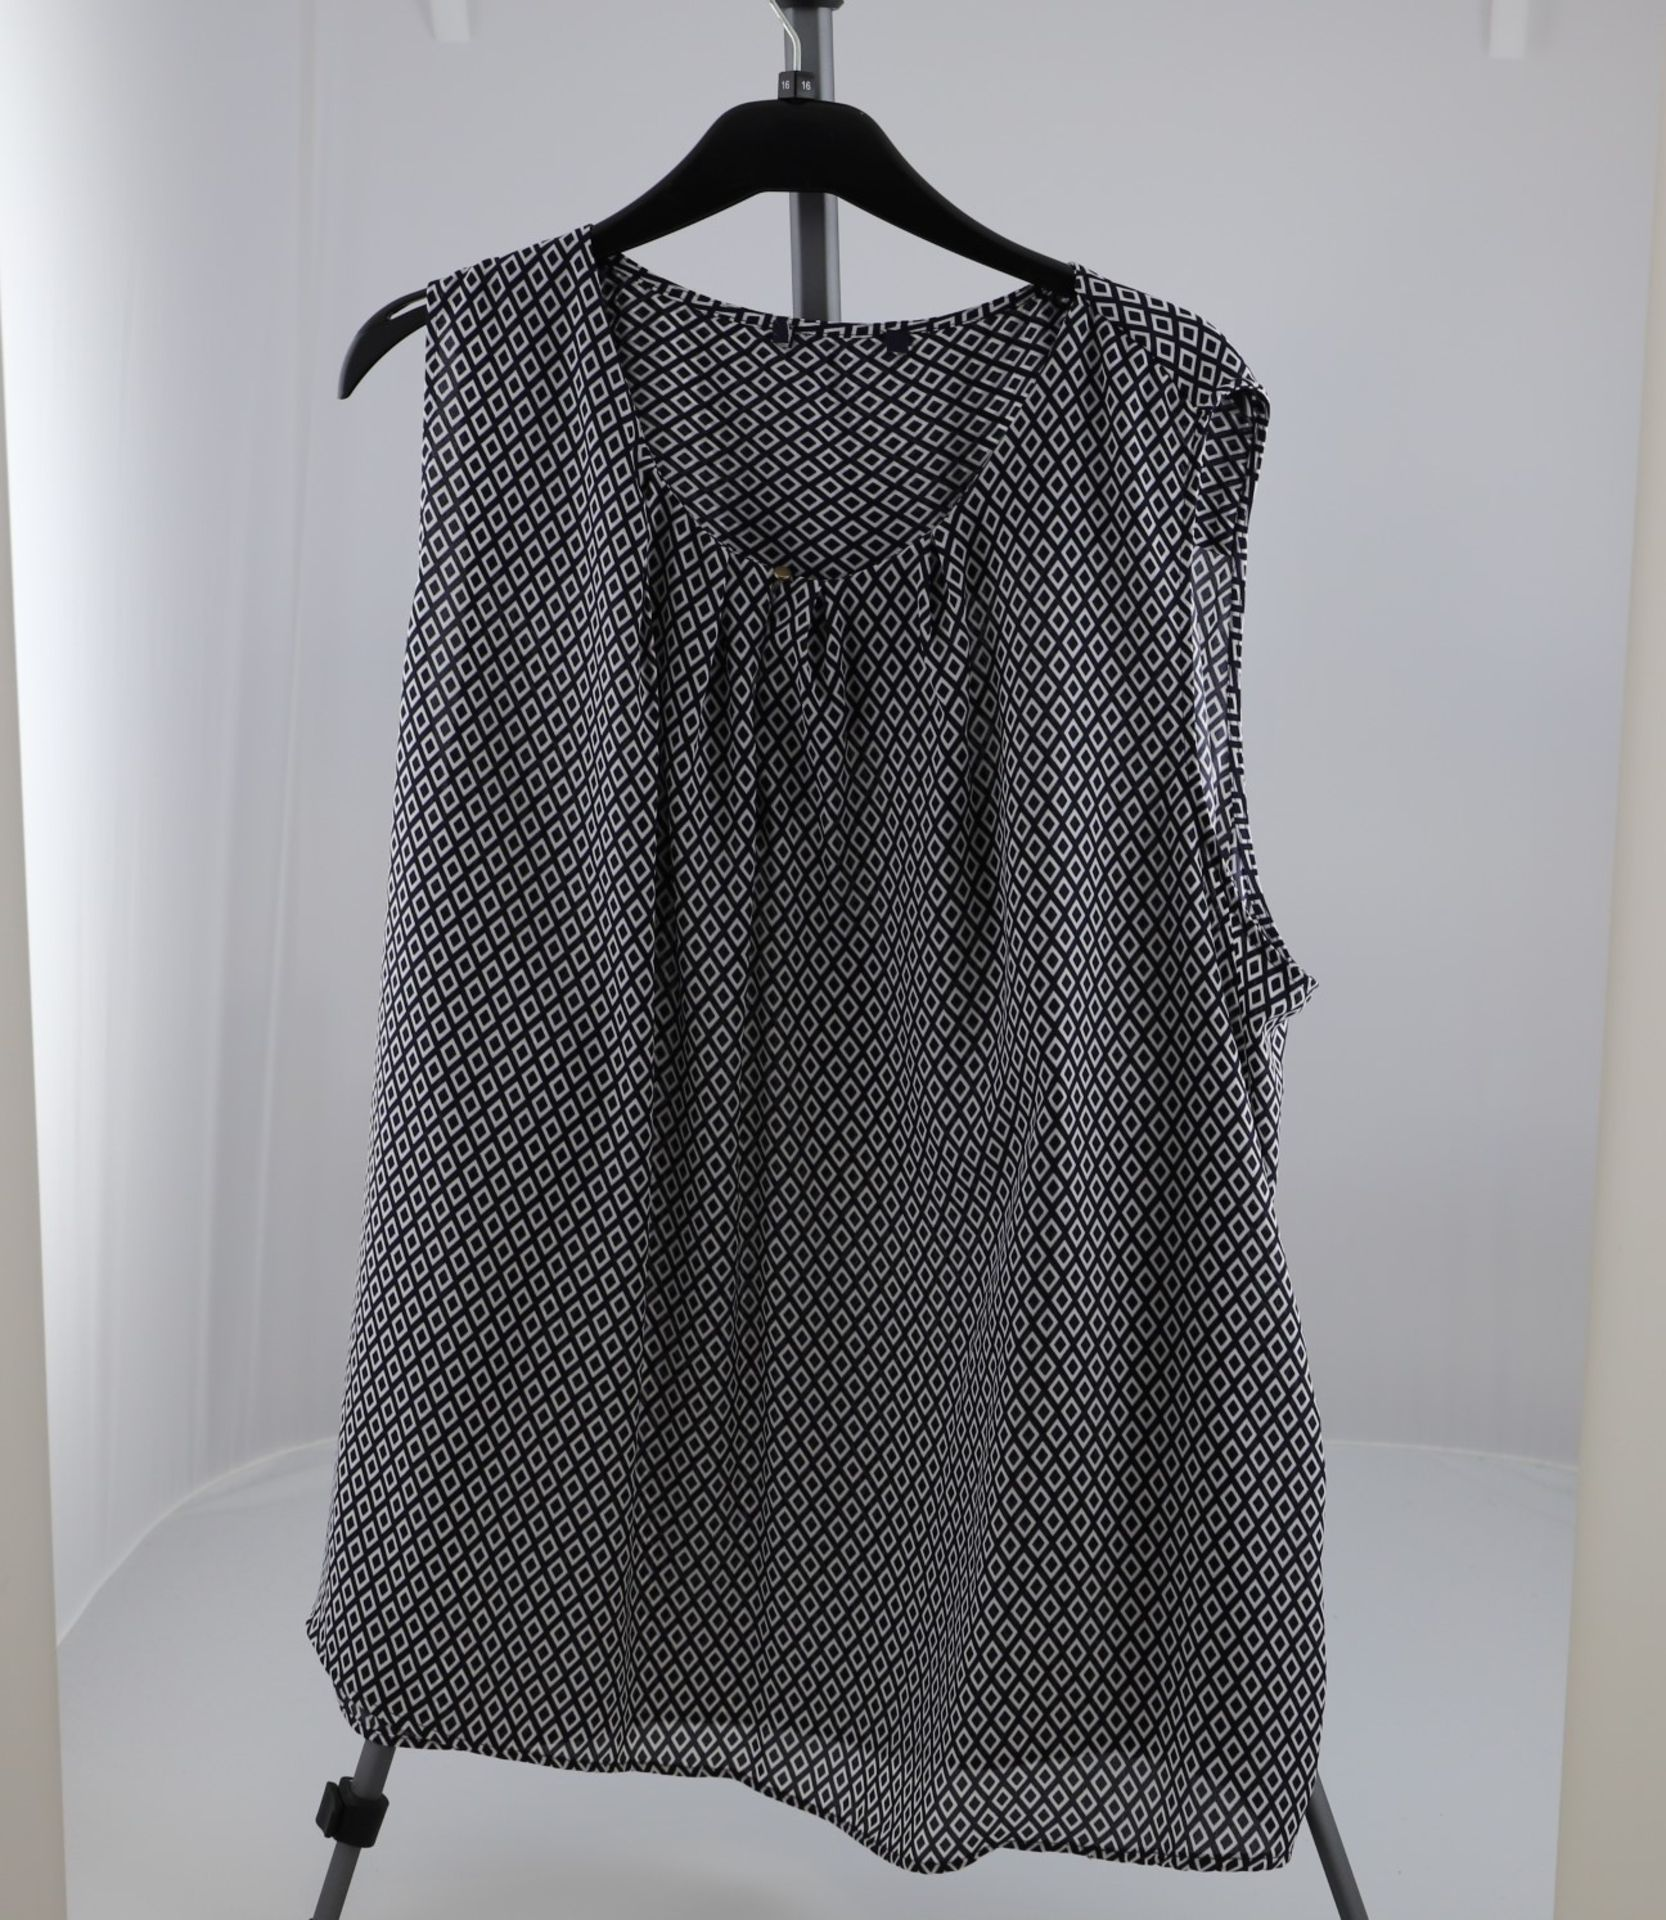 1 x mixed pallet = 314 items of Grade A M&S Womenswear. Approx Total RRP £8212.00 - Image 7 of 9